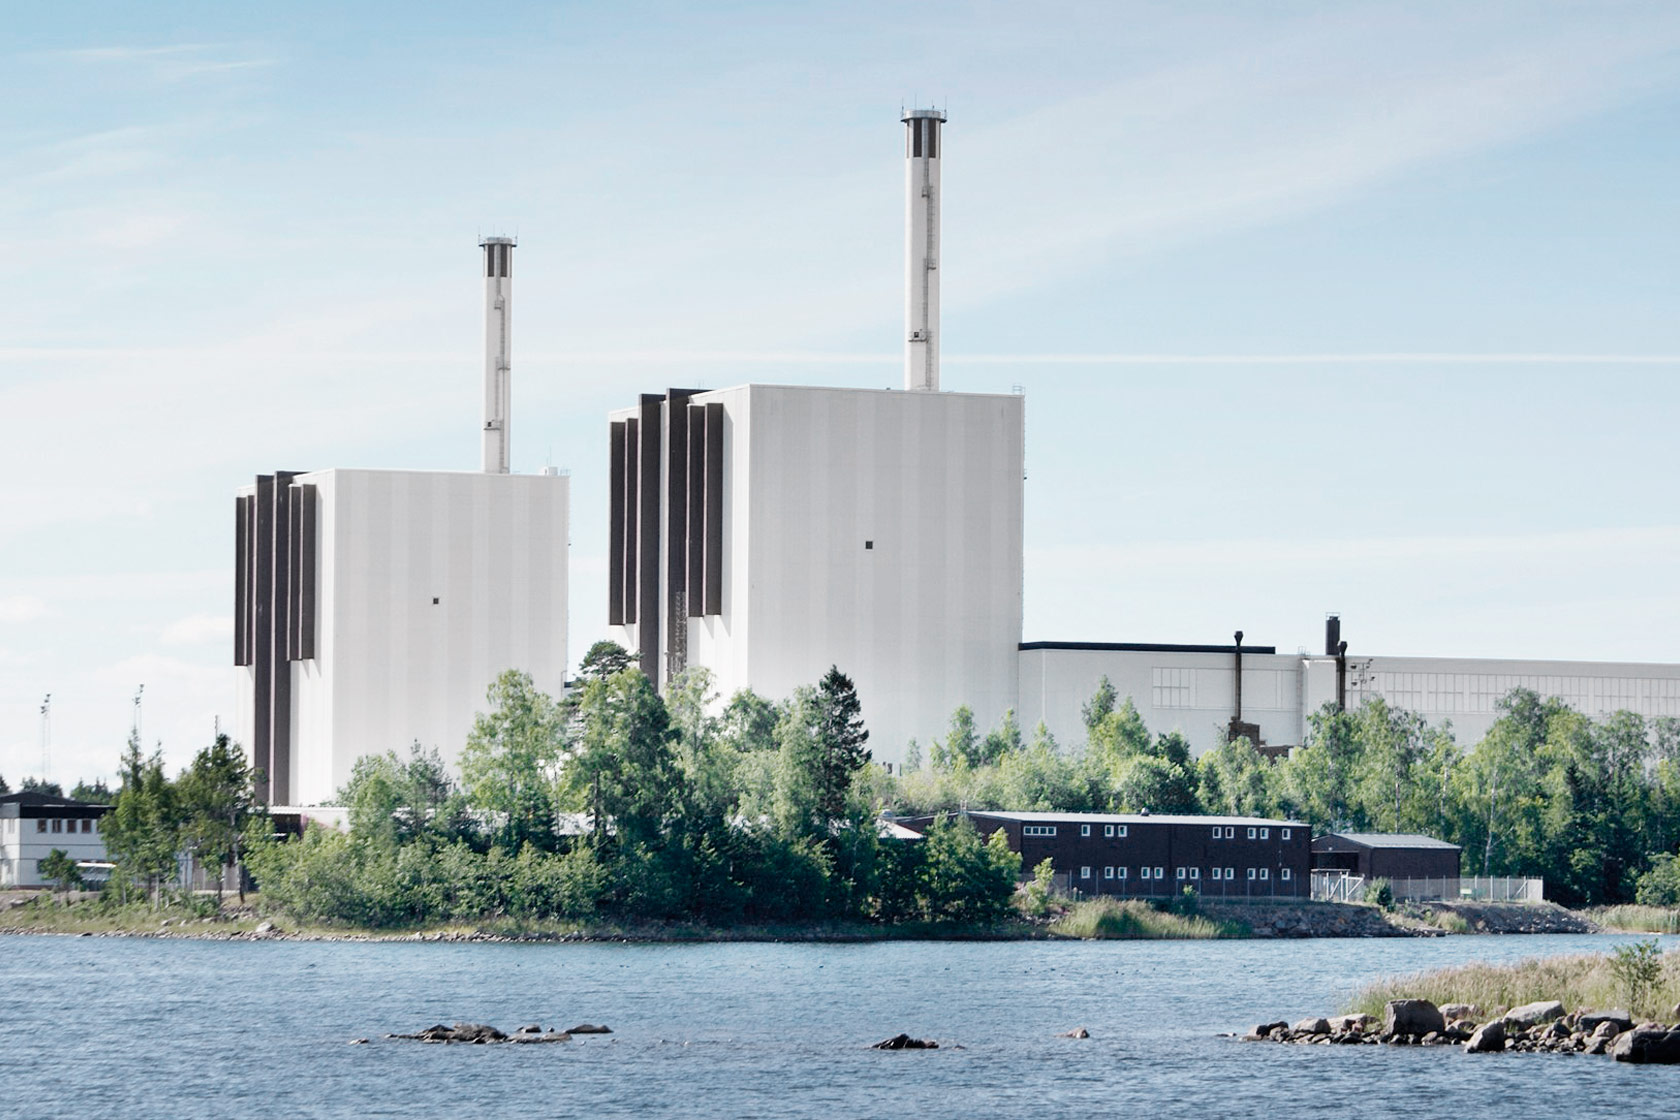 Forsmark nuclear power plant